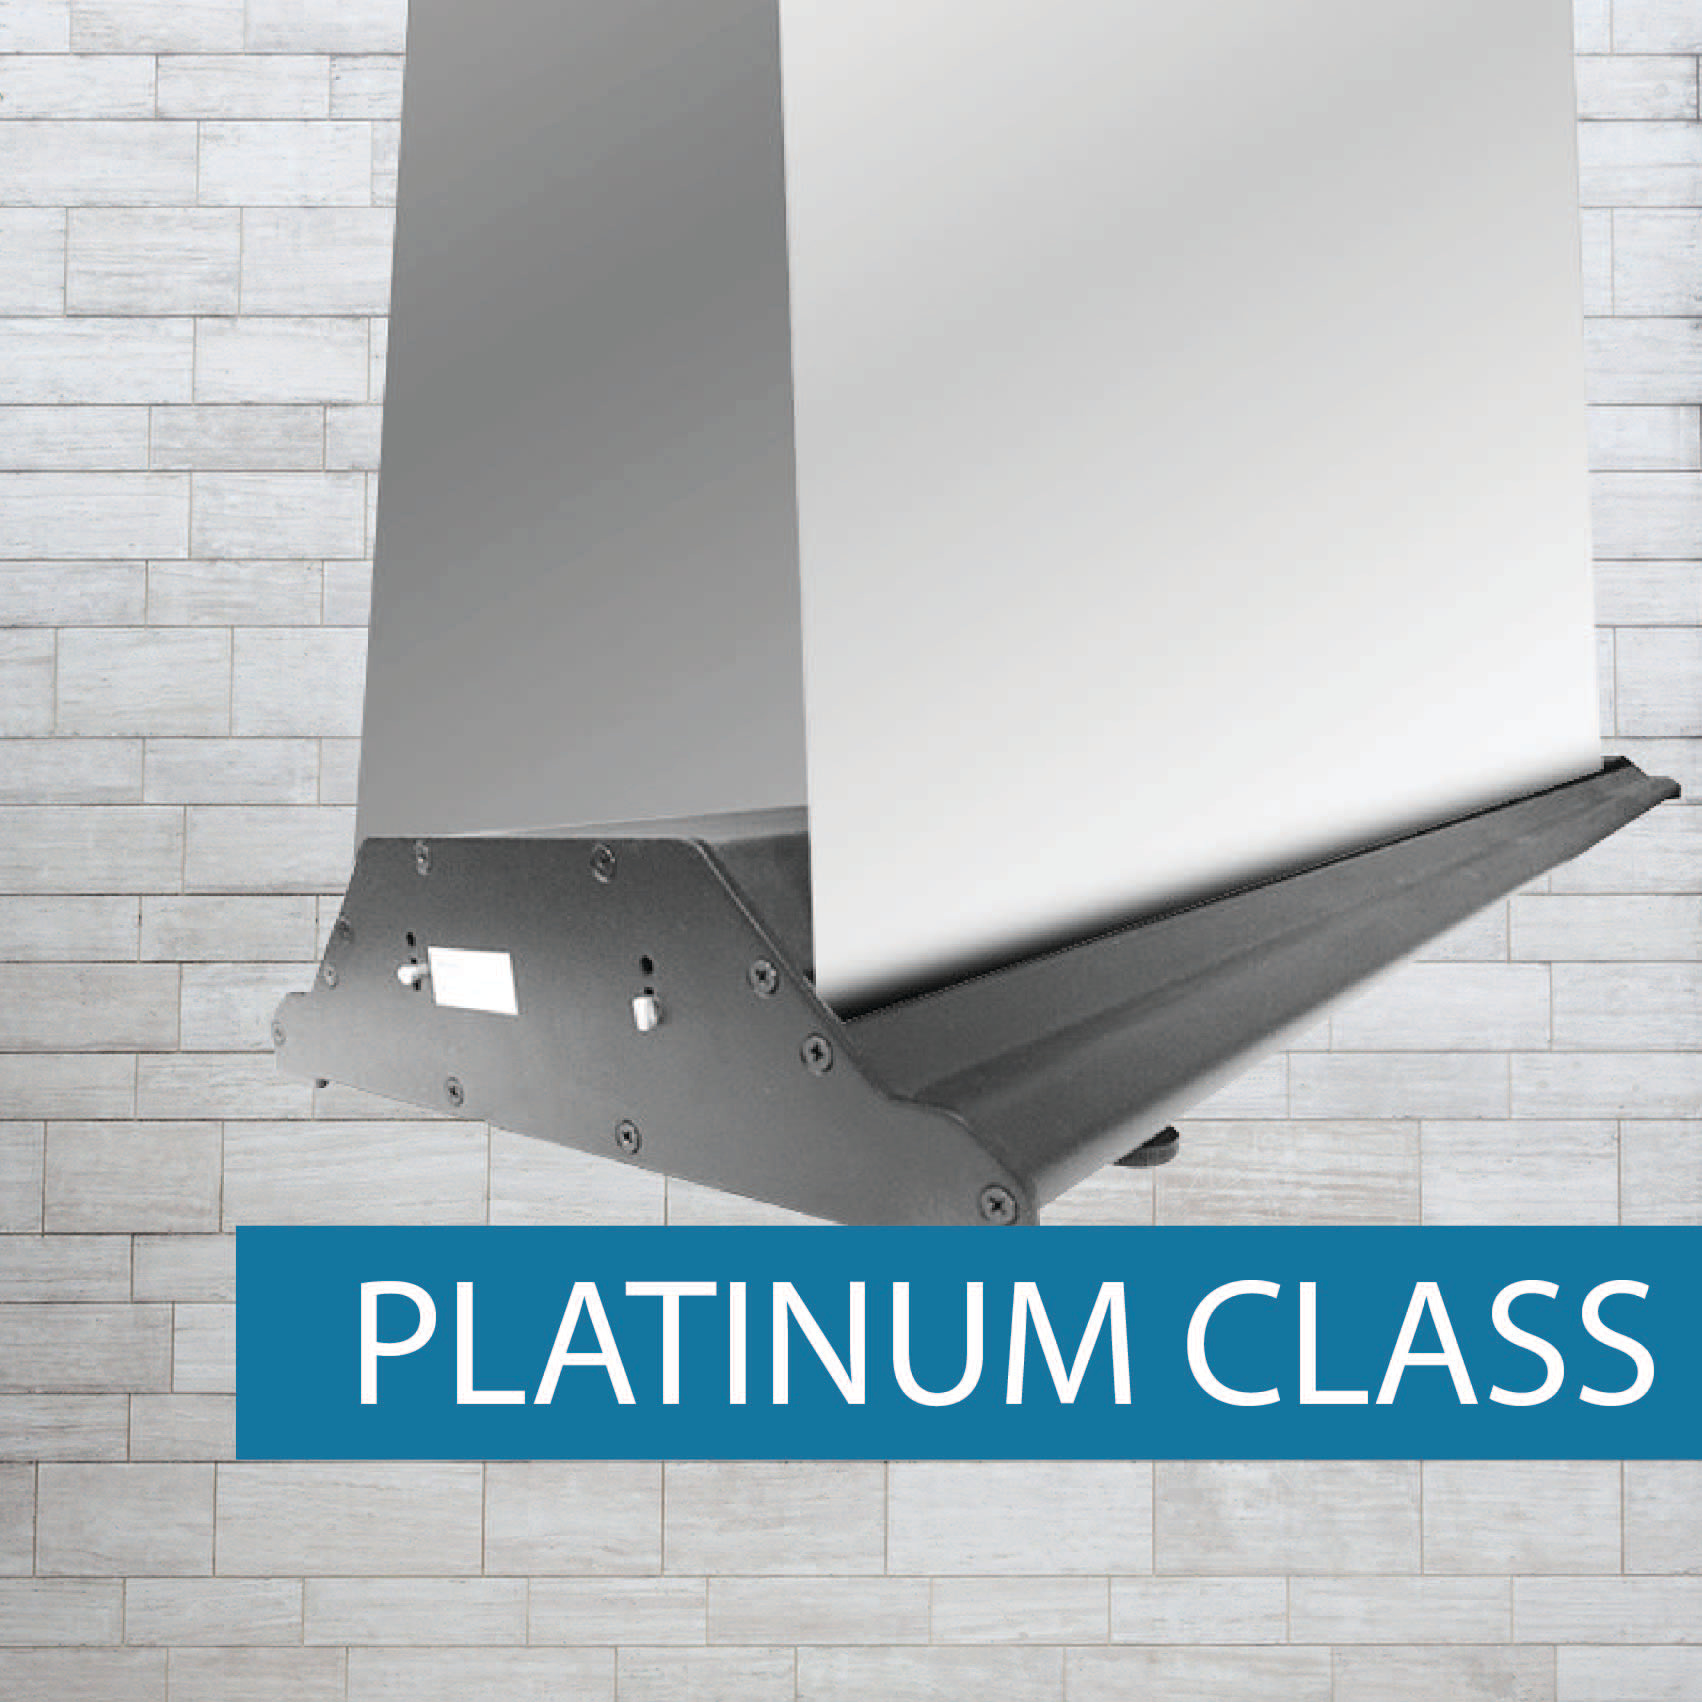 Platinum double sided pullup banner